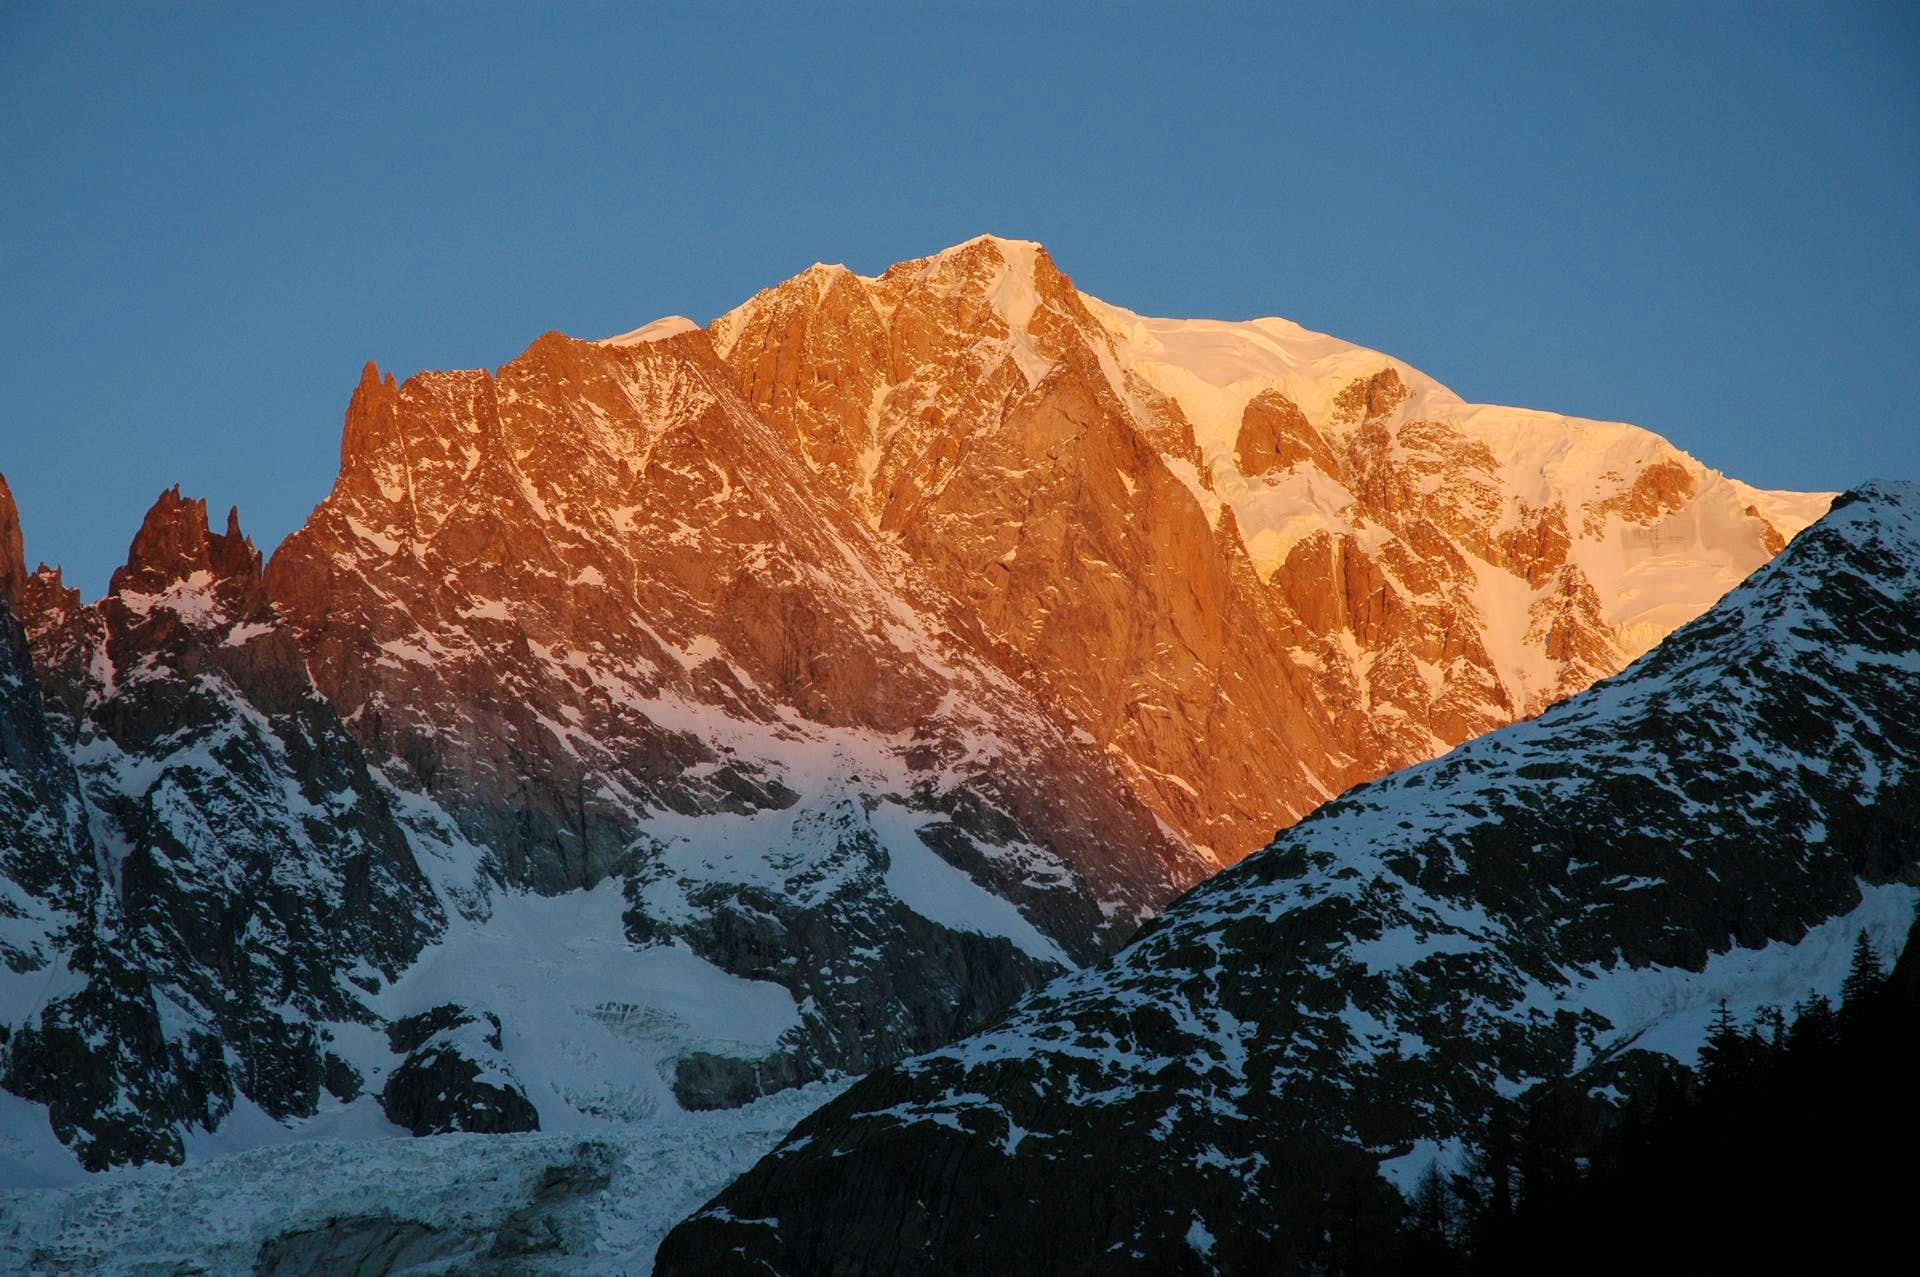 Mont Blanc at sunrise